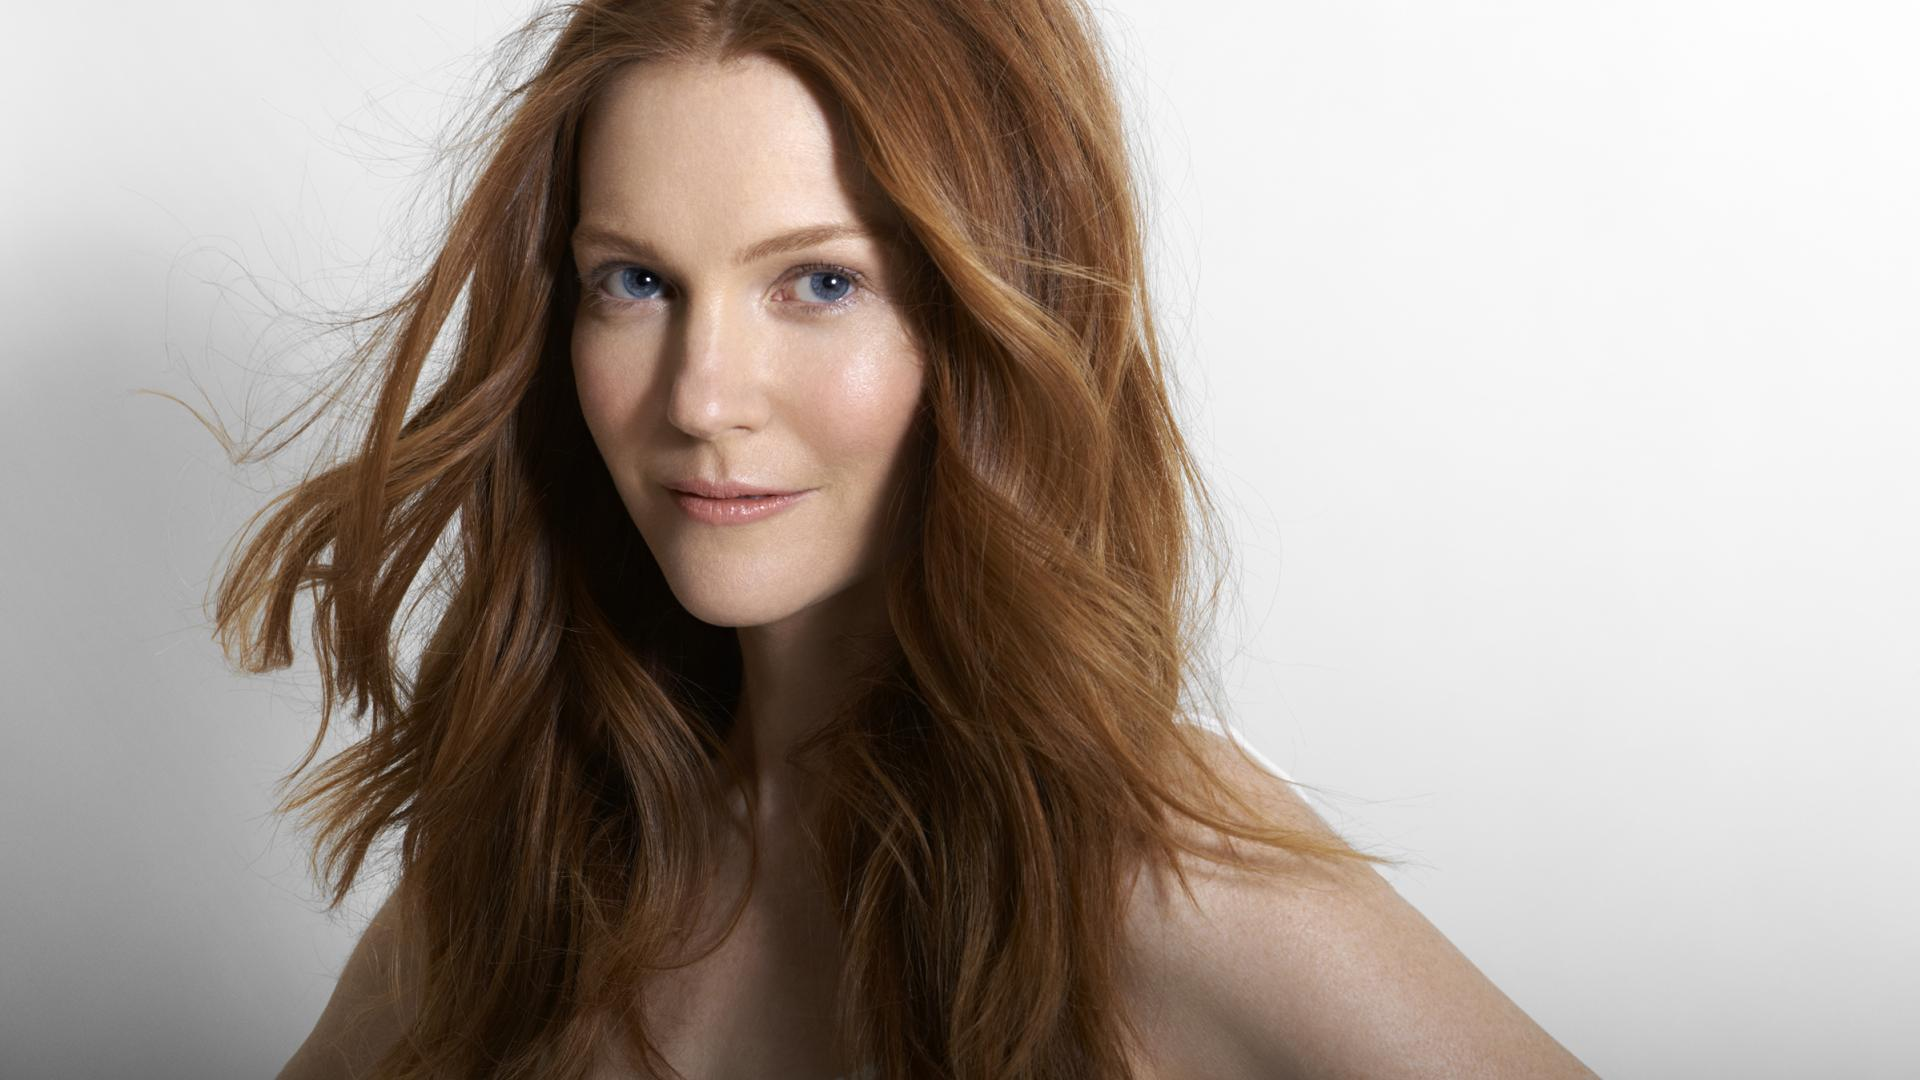 1920x1080 - Darby Stanchfield Wallpapers 13